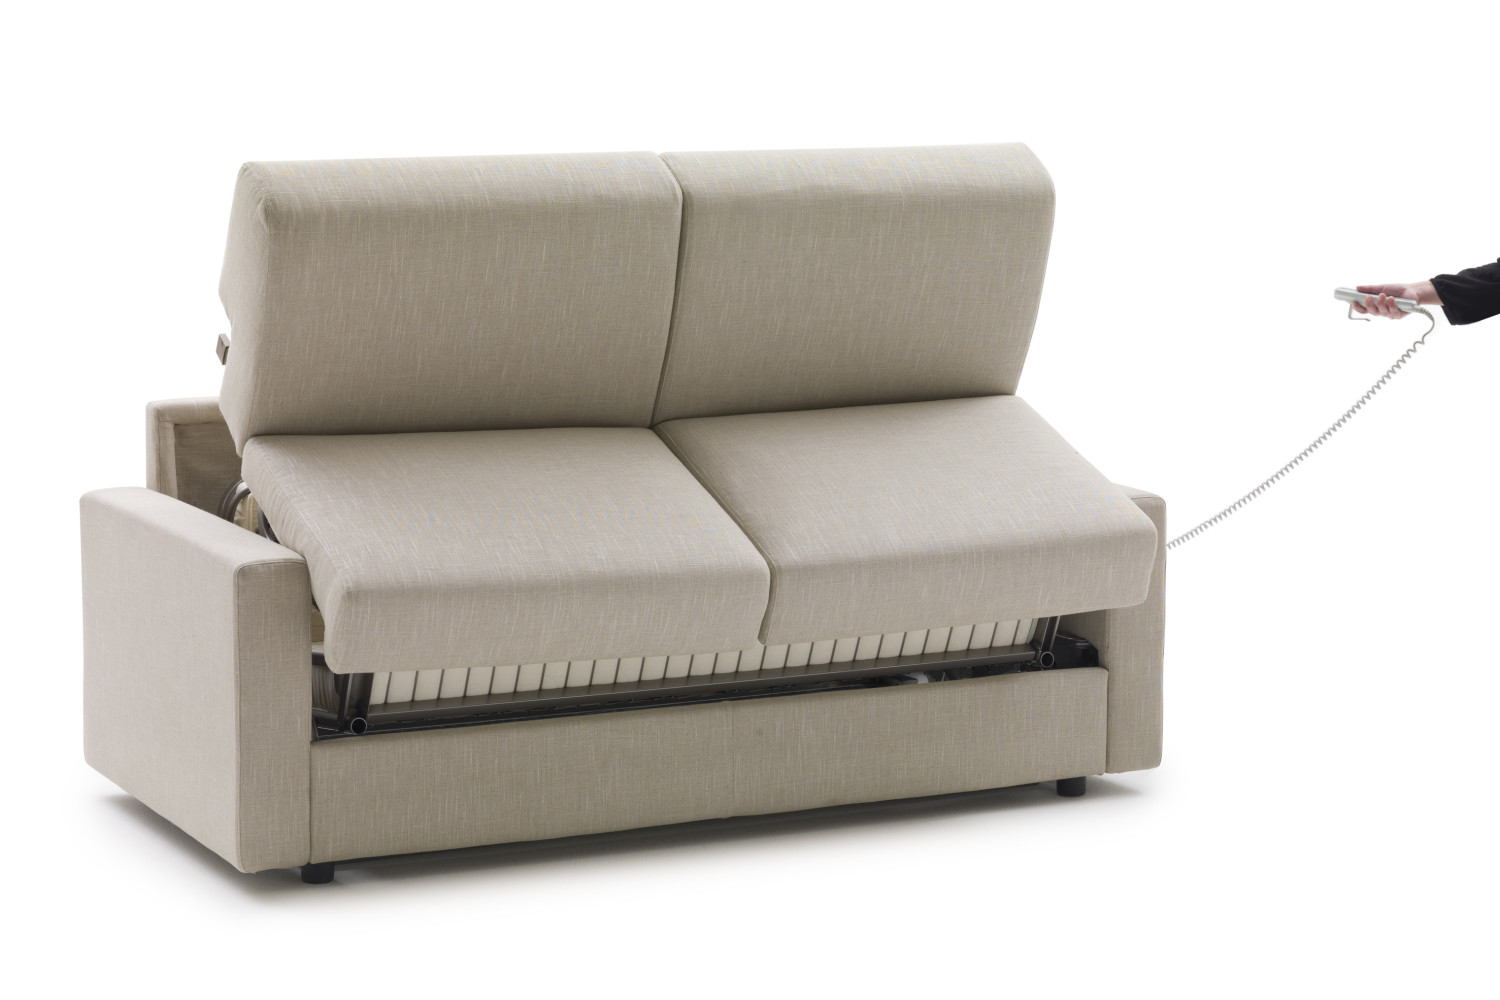 Lampo motion sofa bed with motorised opening system - Sofas cama libro ...